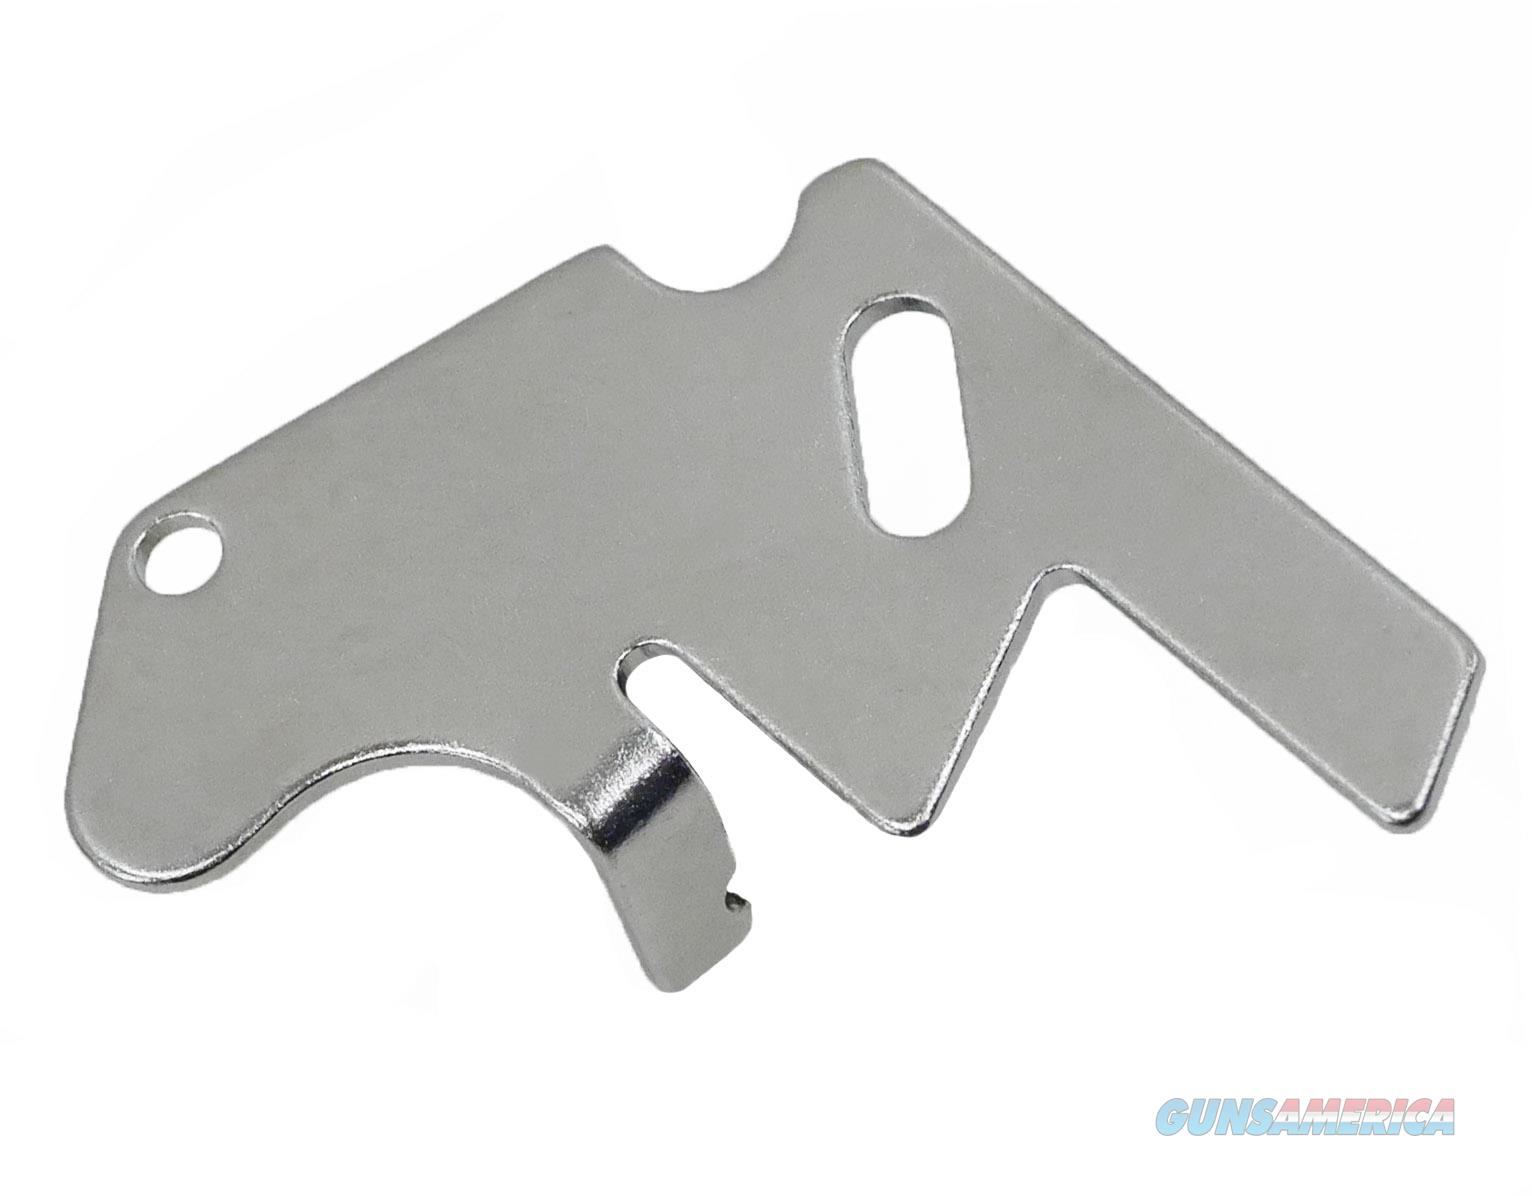 Auto Bolt Release Stainless Steel - Ruger 10/22 Upgrade Free Shipping--001  Non-Guns > Miscellaneous